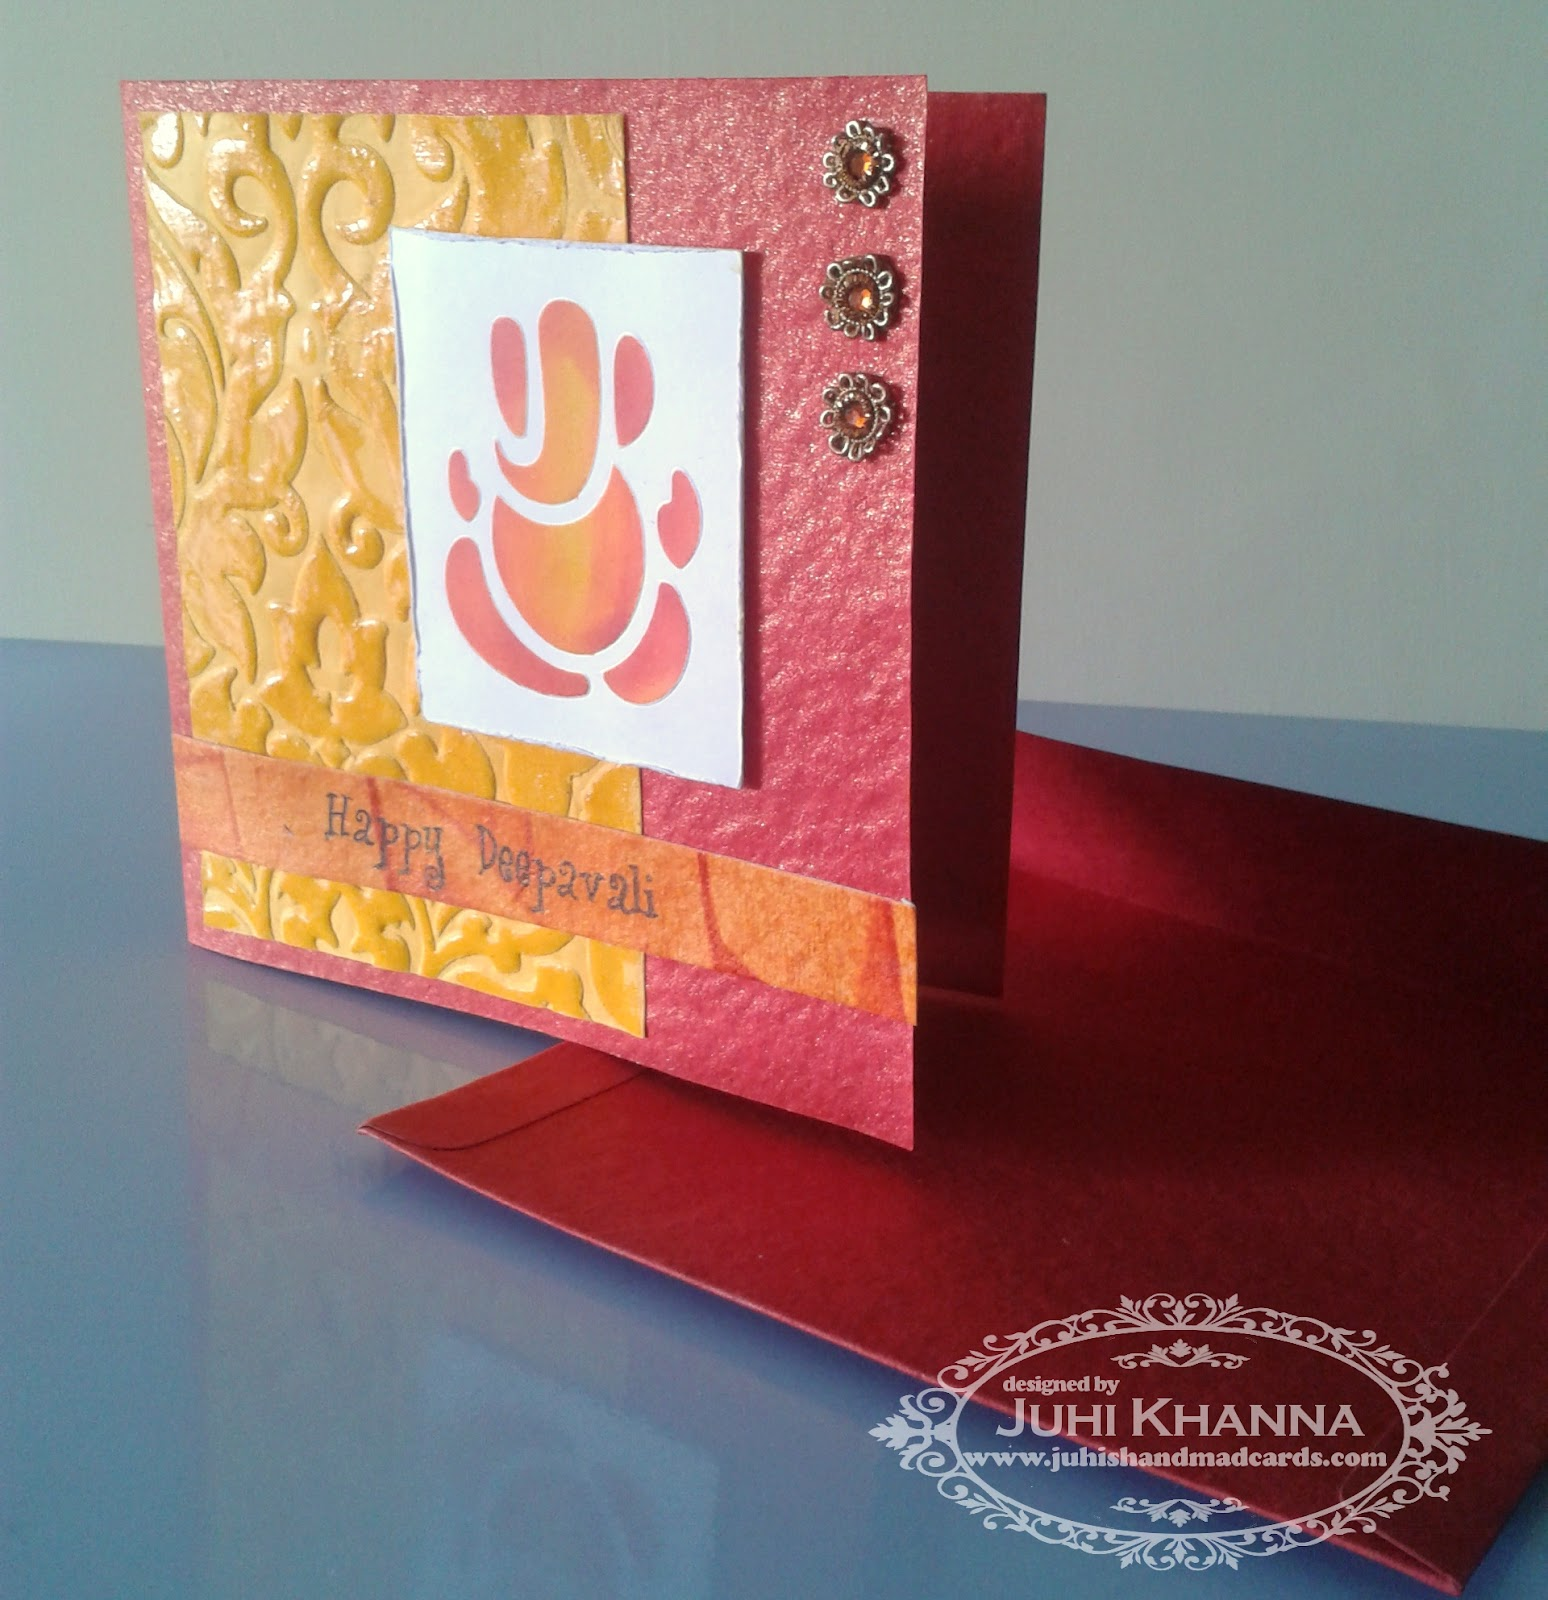 images of handmade cards - photo #45